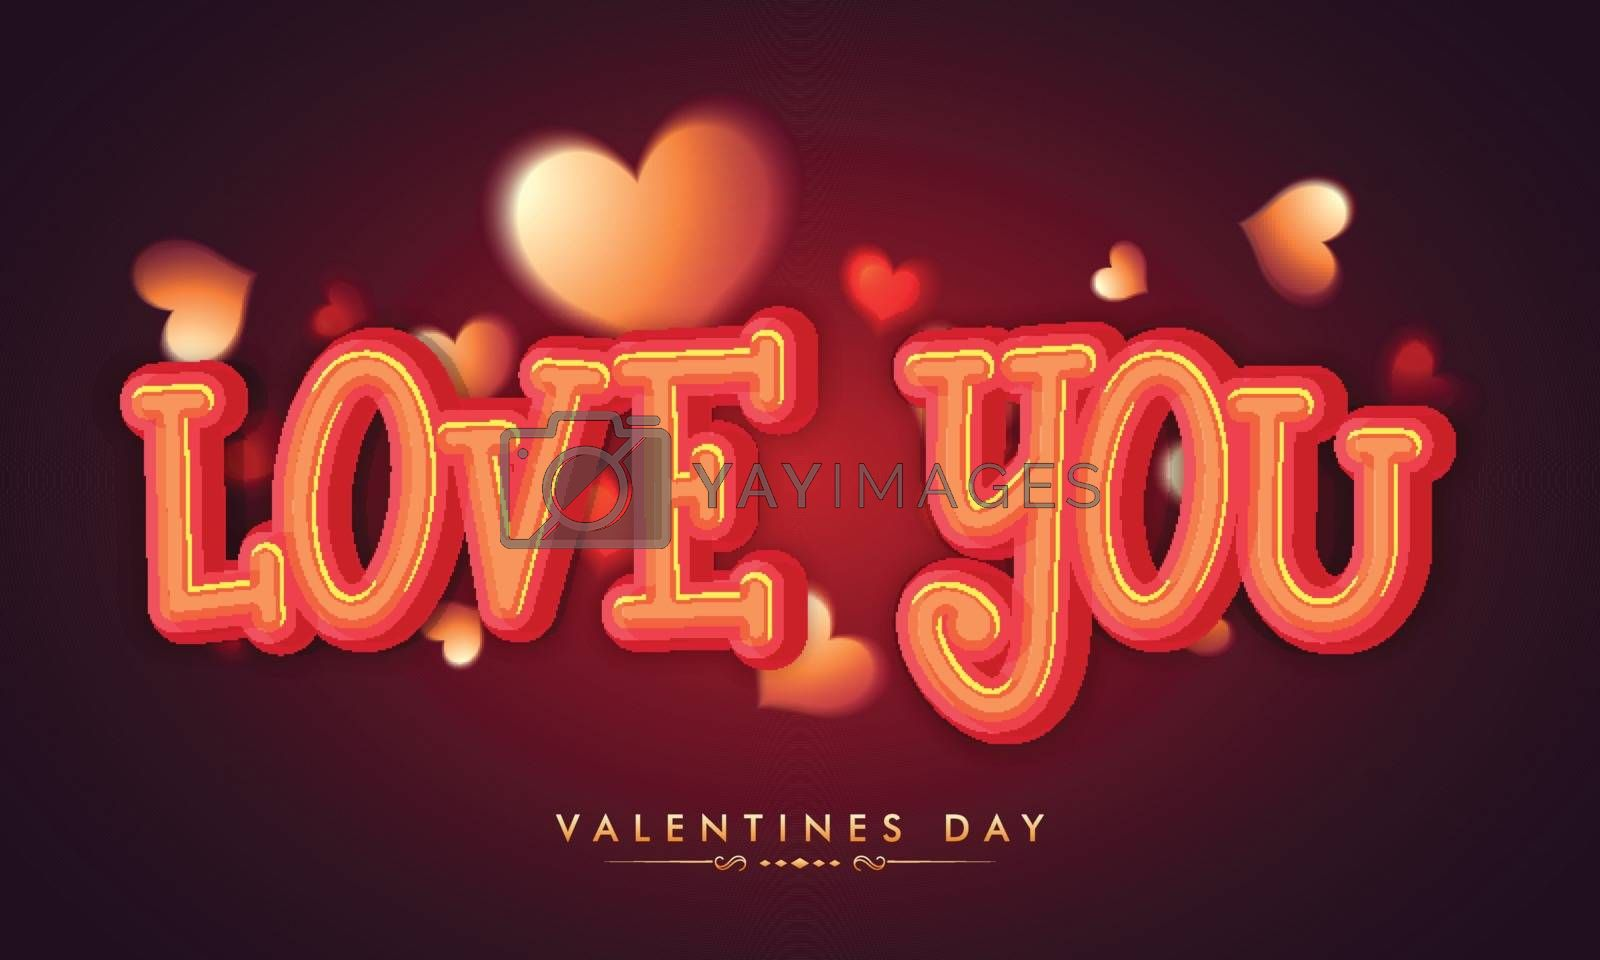 Glossy Text Love You on Hearts decorated background for Happy Valentine's Day Celebration.